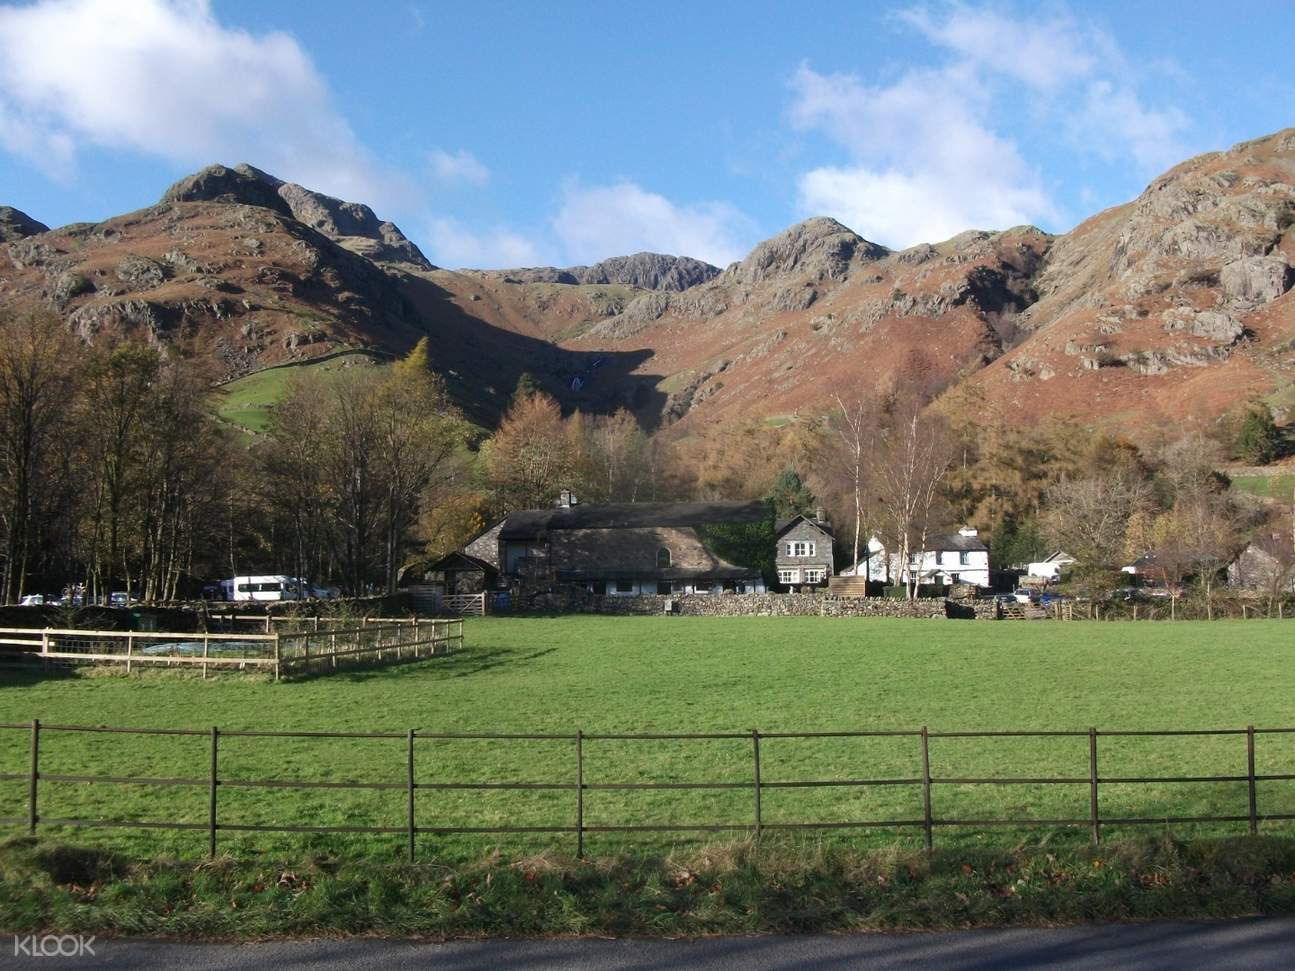 view of langdale pikes and grass underneath